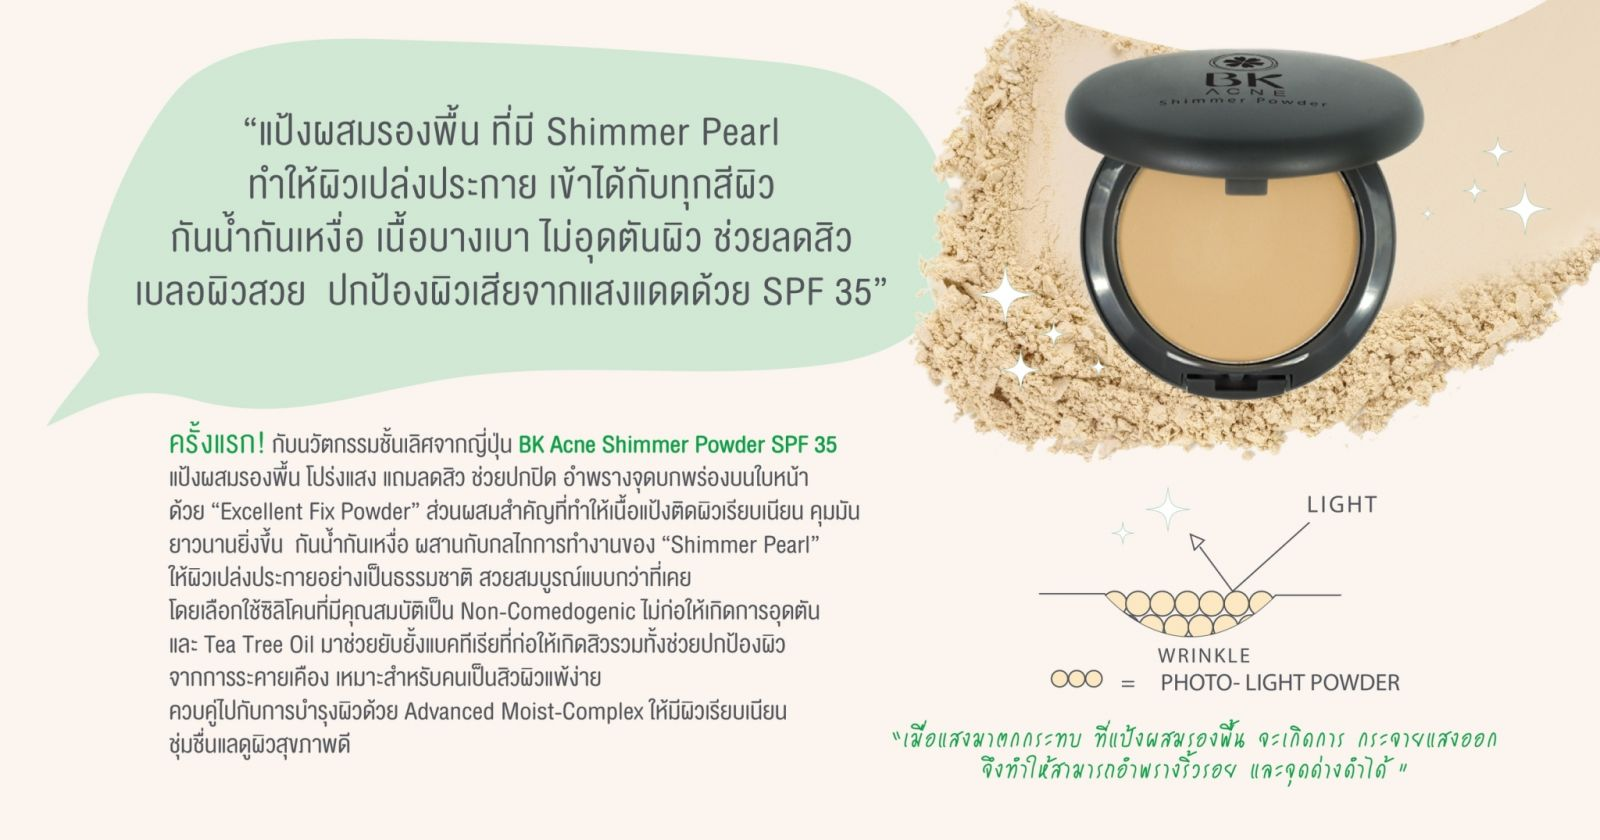 BK MASK, BK MASK BK Acne Shimmer Matt Powder SPF35, BK MASK BK Acne Shimmer Matt Powder SPF35 รีวิว, BK MASK BK Acne Shimmer Matt Powder SPF35 ราคา, BK Acne Shimmer Matt Powder SPF35, BK Acne Shimmer Matt Powder SPF35 #02 Natural, BK MASK BK Acne Shimmer Matt Powder SPF35 #02 Natural 8.5 g.